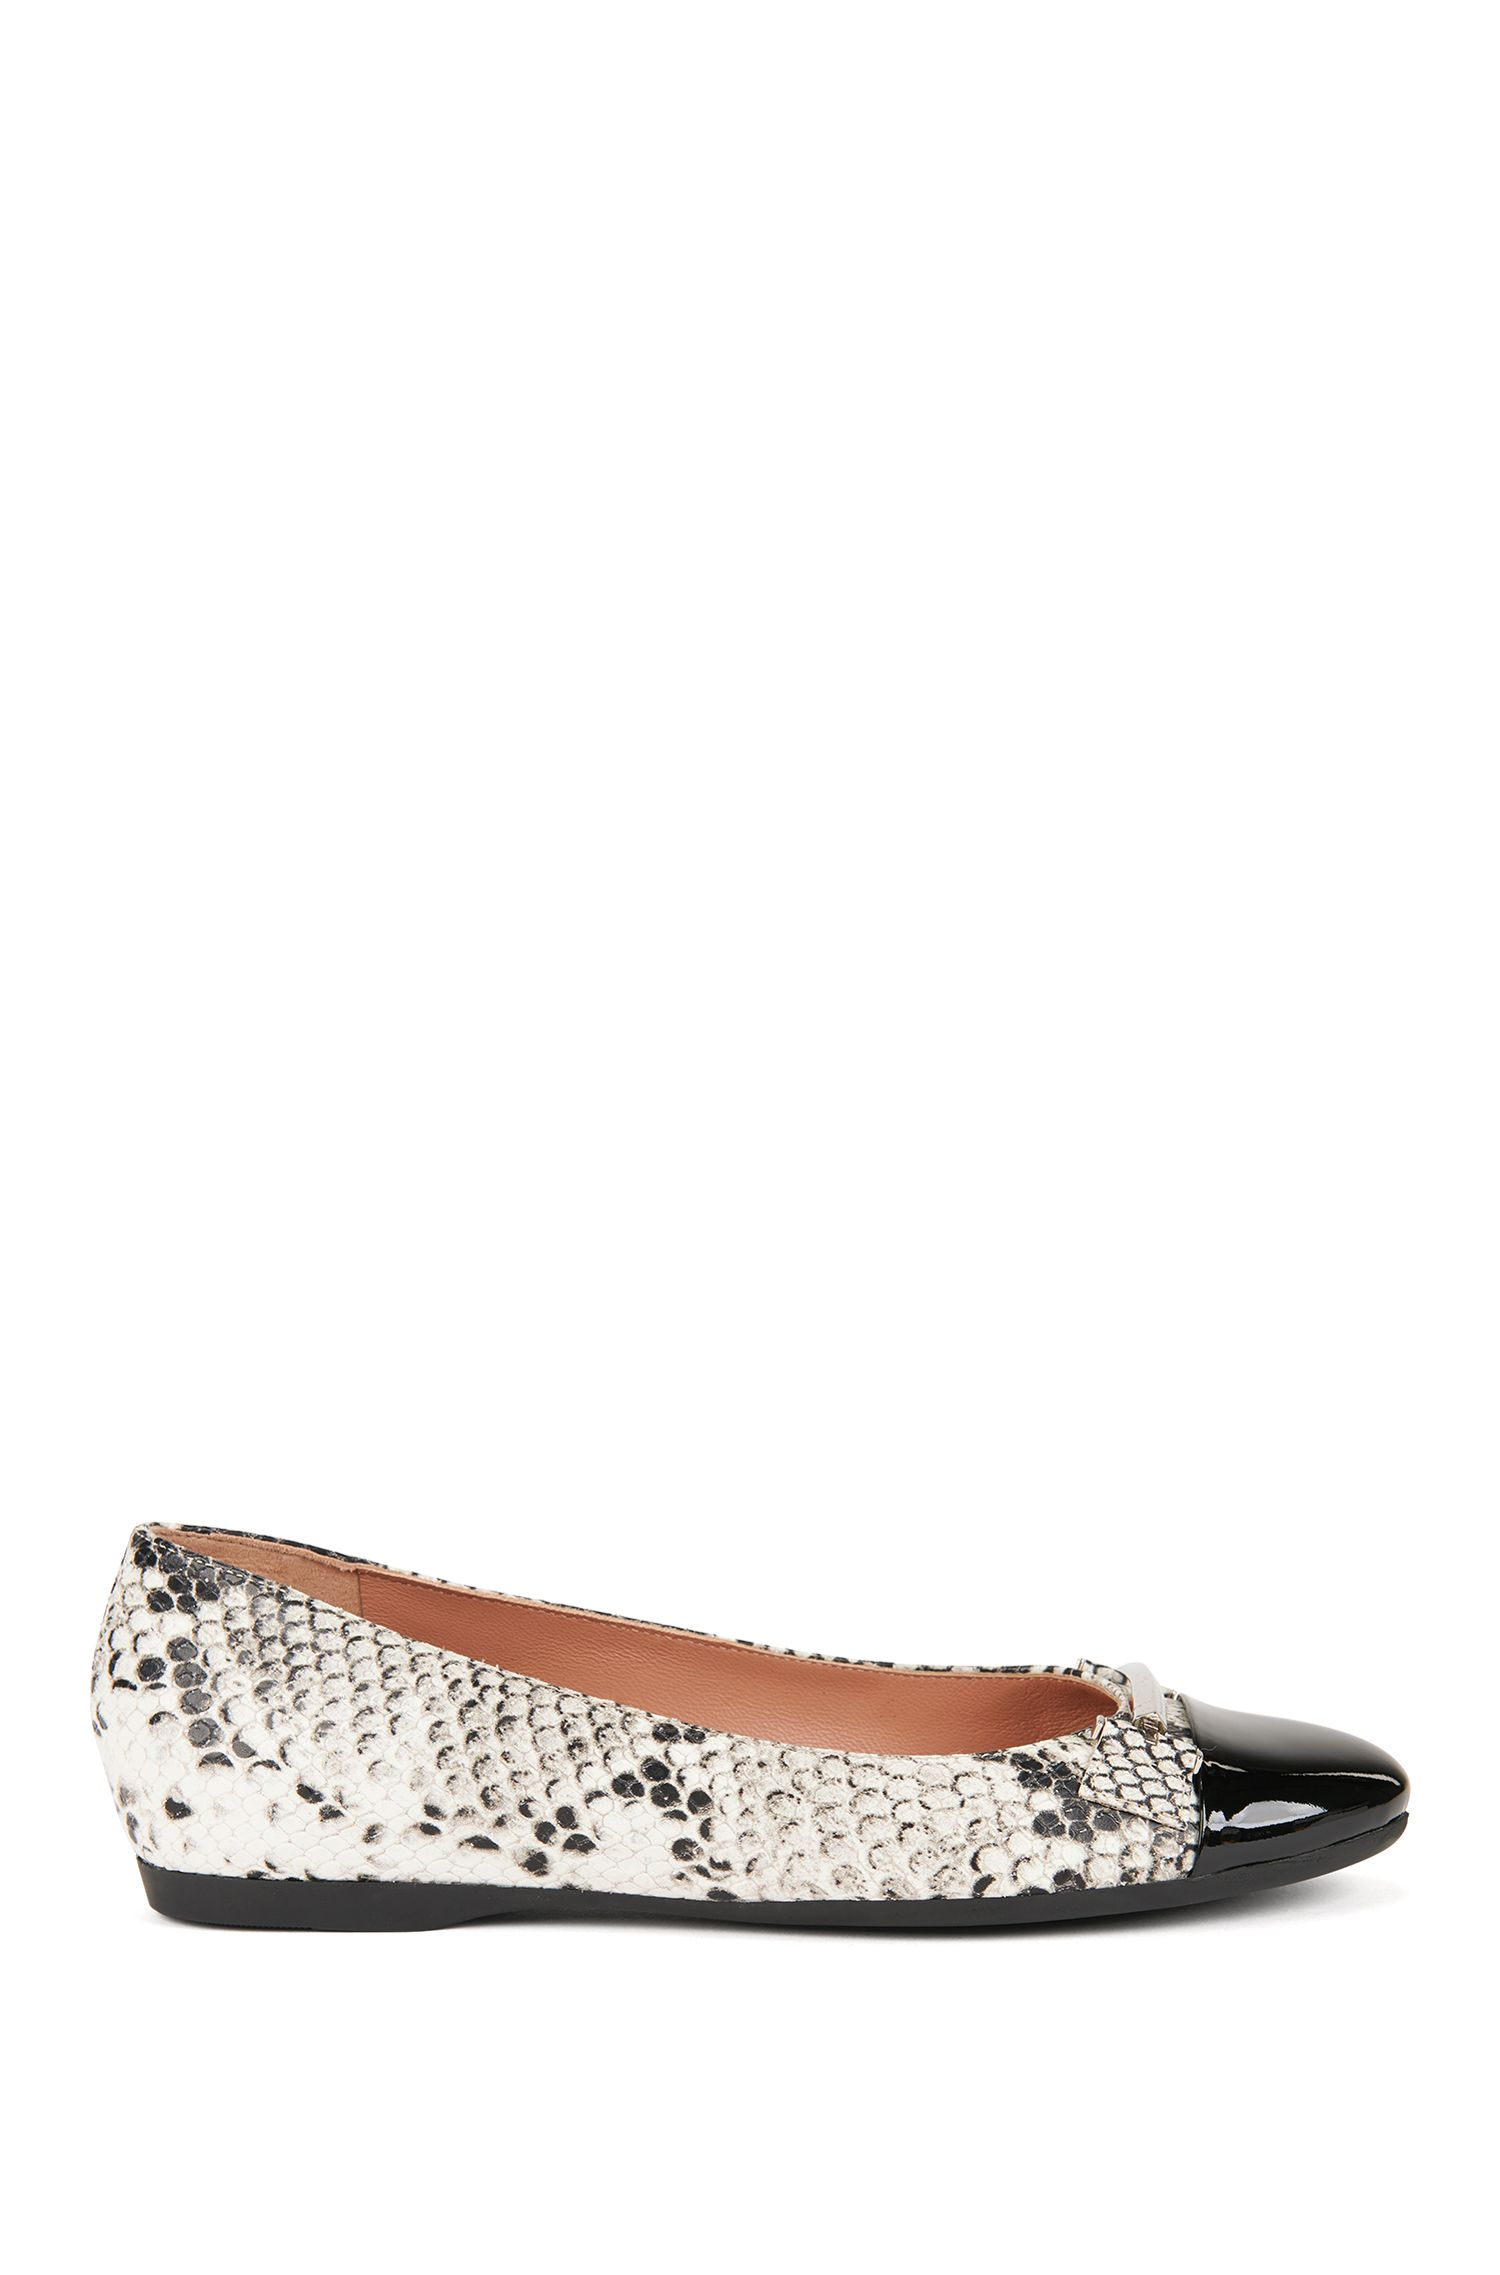 Snakeprint leather ballerina pumps with patent toe